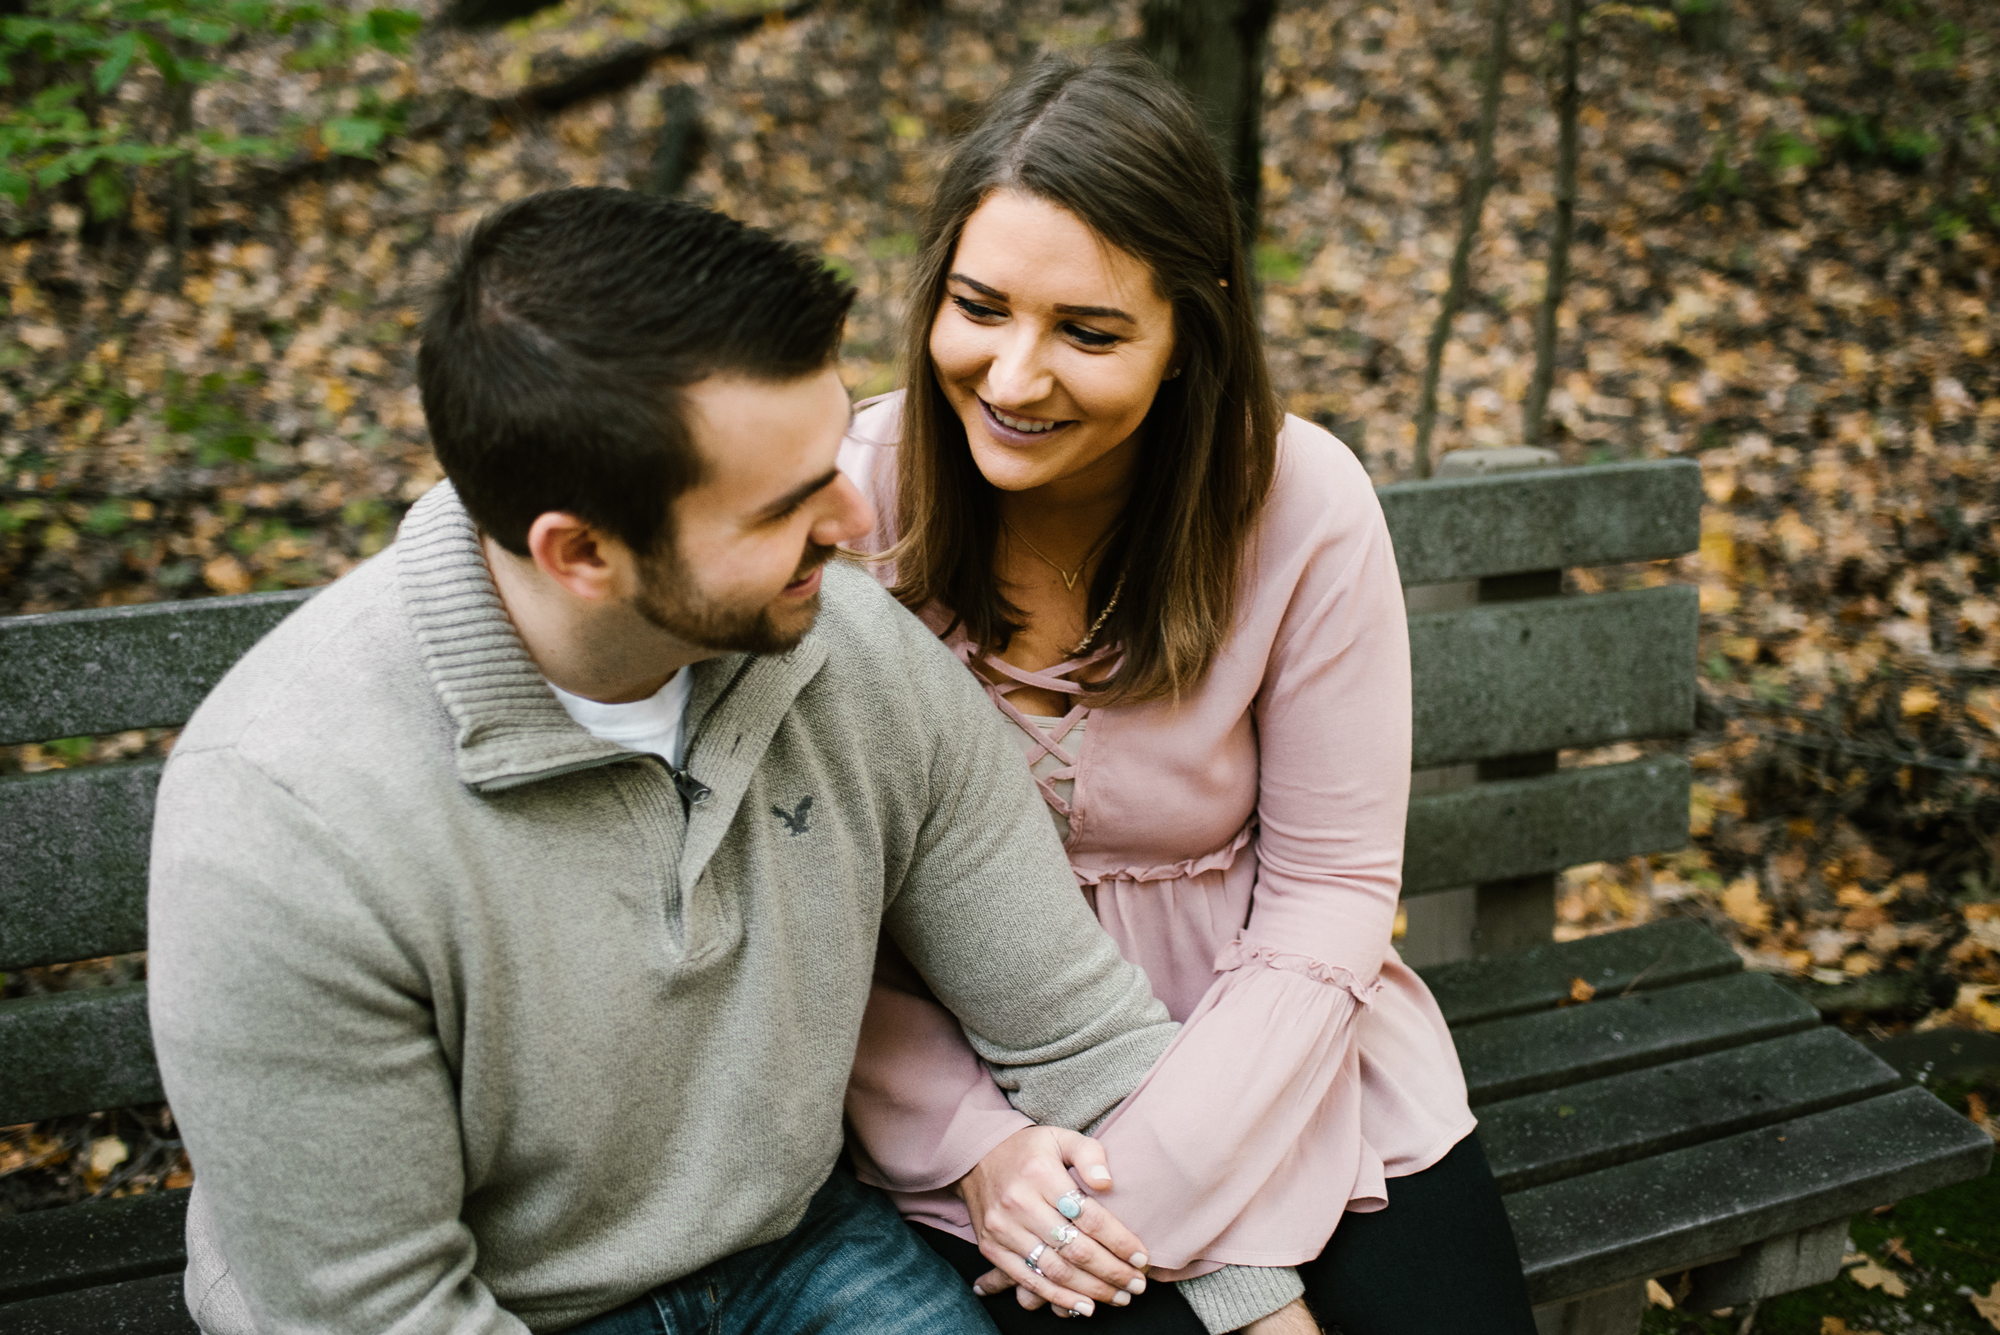 grand-haven-michigan-engagement-photographer-sydney-marie (33).jpg